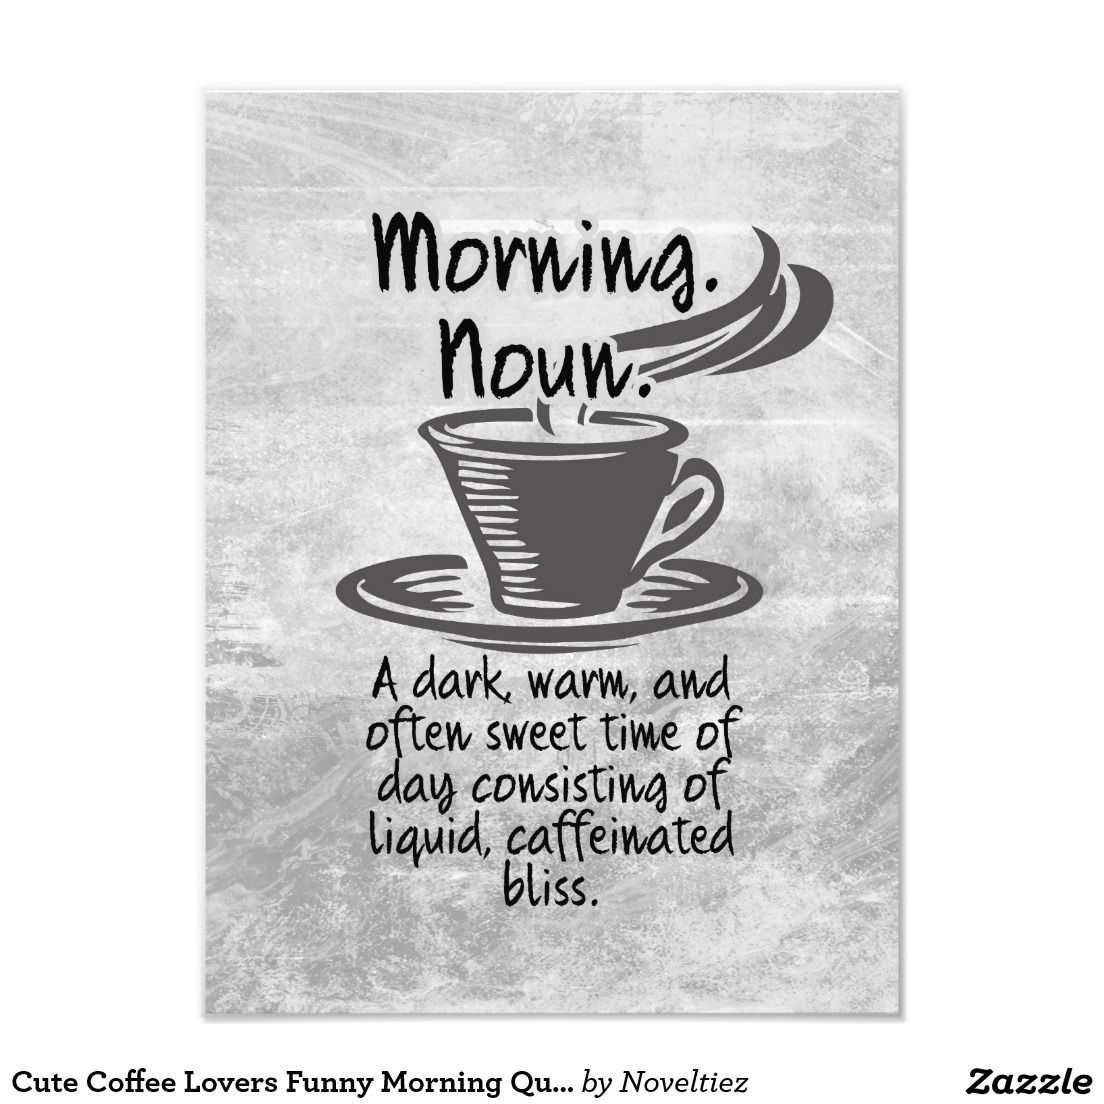 Cute Coffee Lovers Funny Morning Quote Photo Print Zazzle Com Coffee Lover Humor Coffee Lover Coffee Quotes